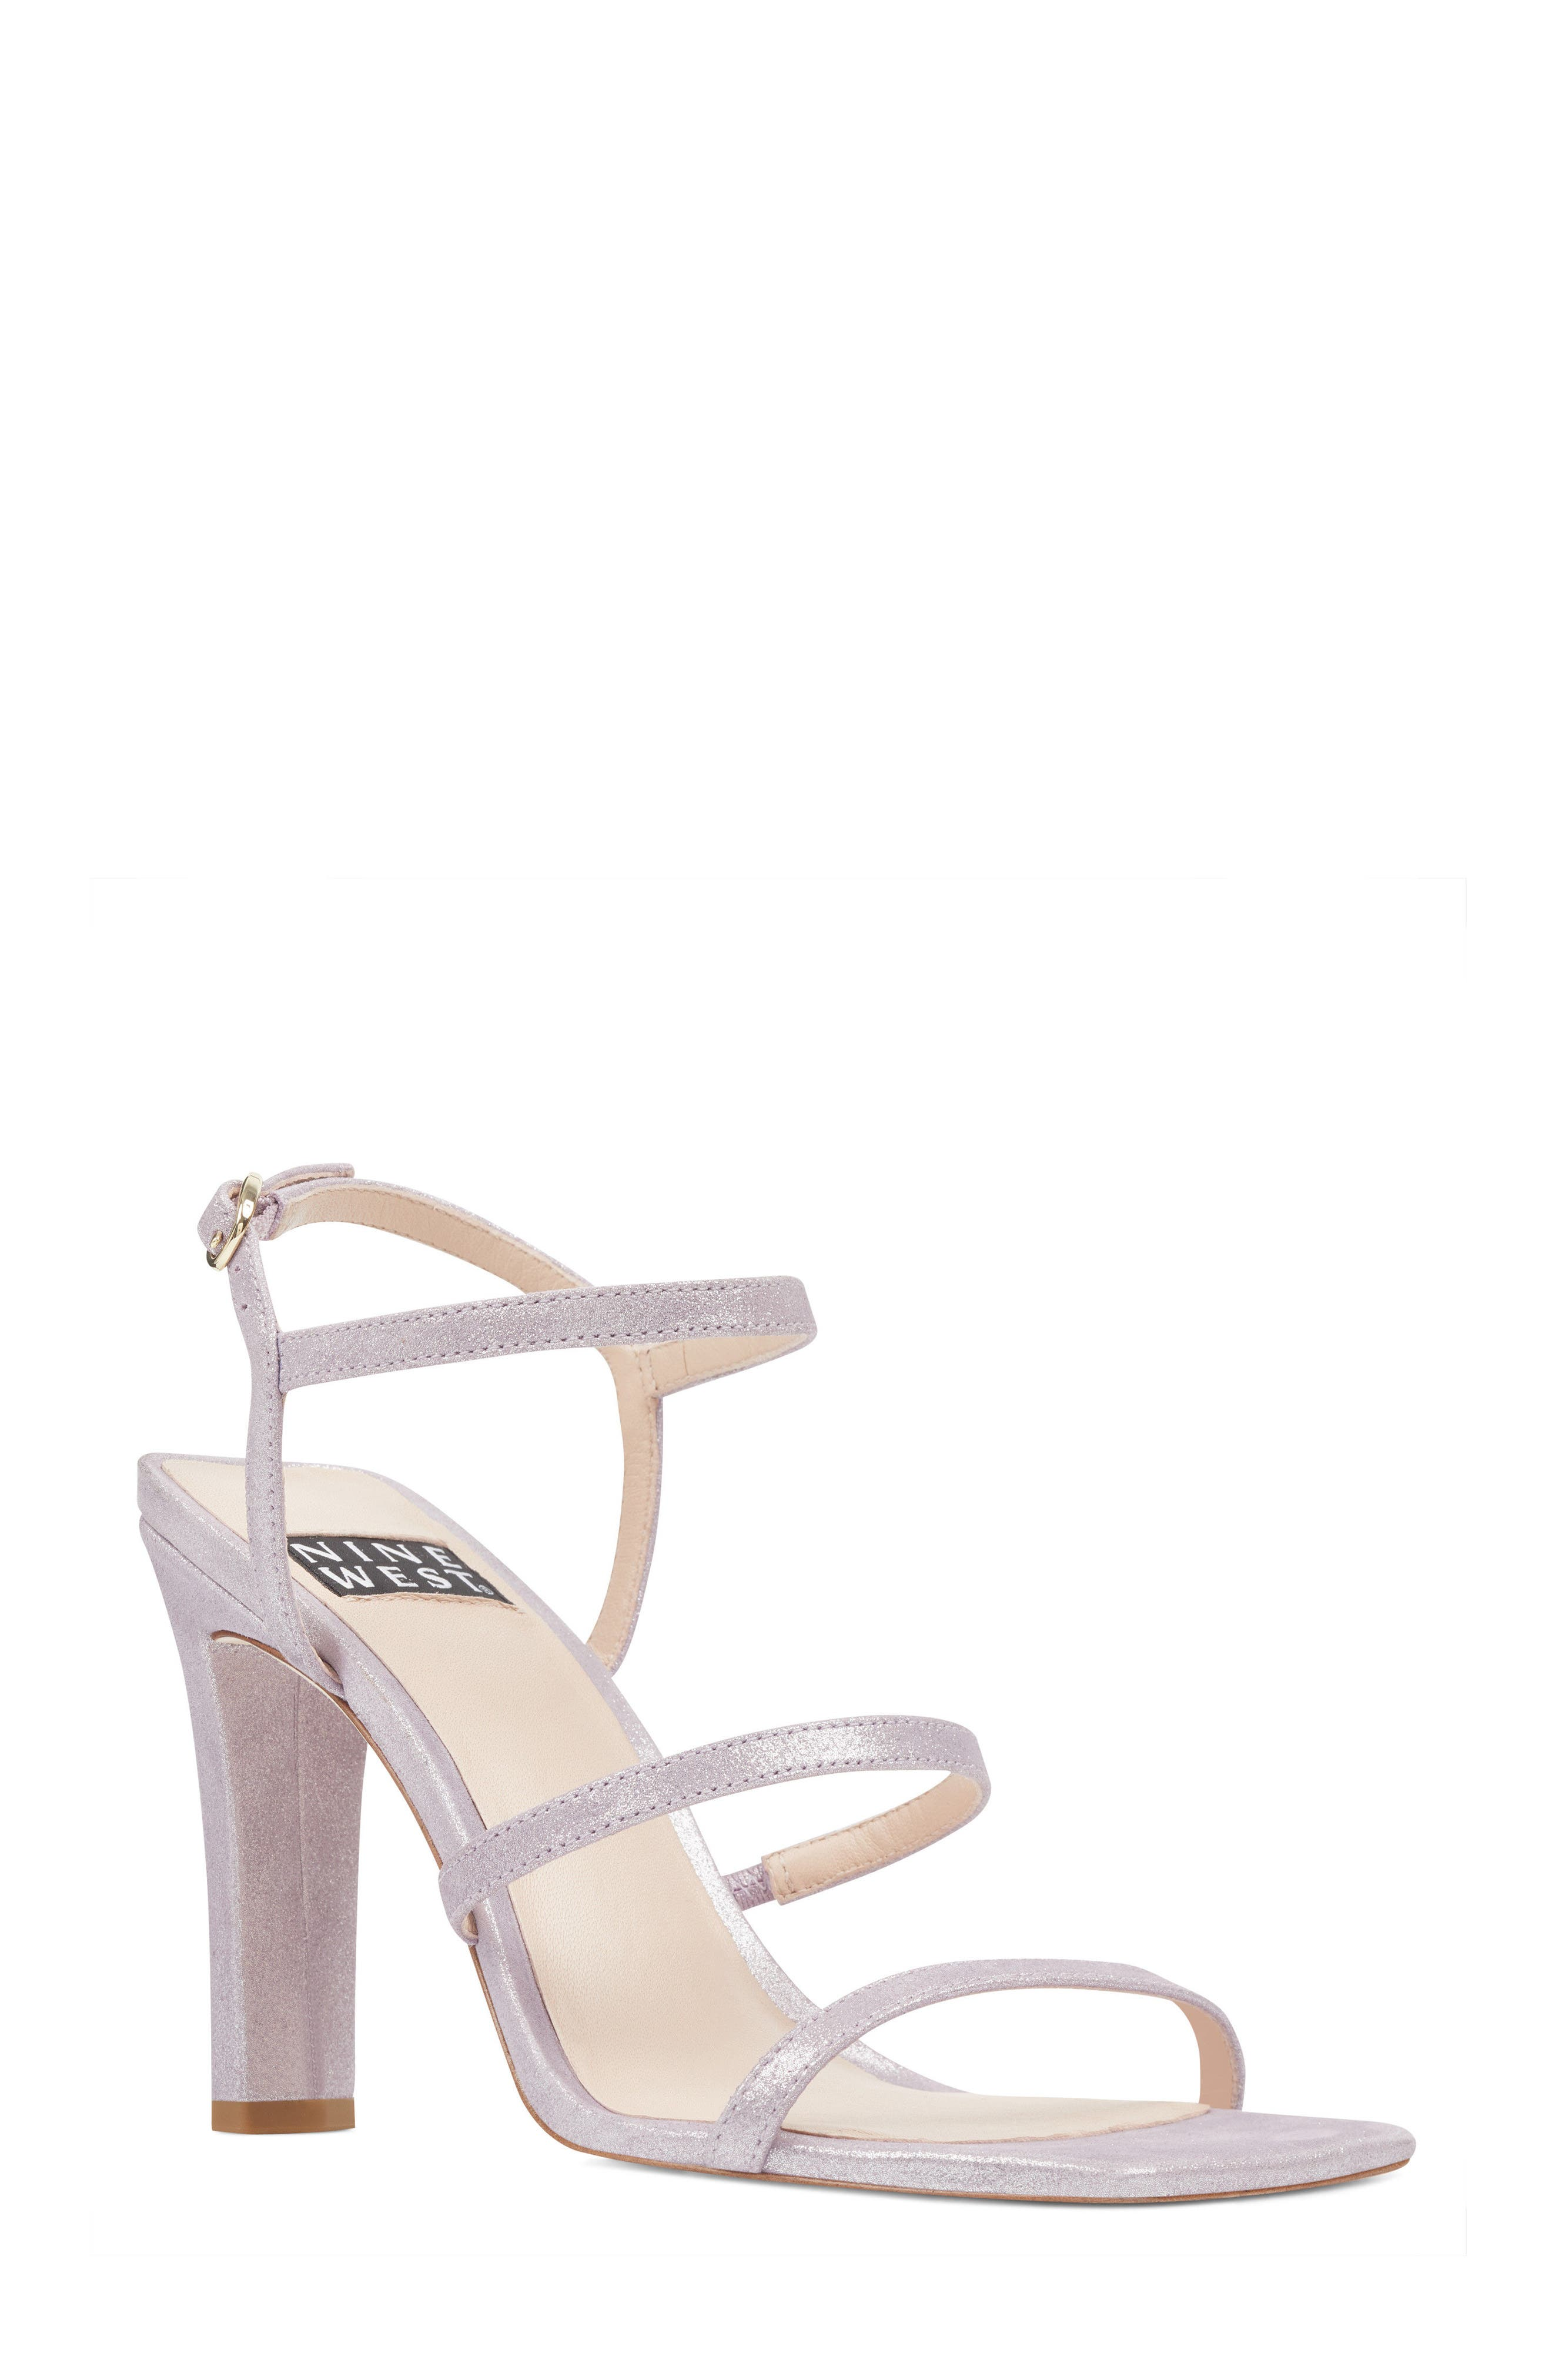 Gabelle - 40th Anniversary Capsule Collection Sandal,                             Main thumbnail 1, color,                             Light Purple Leather